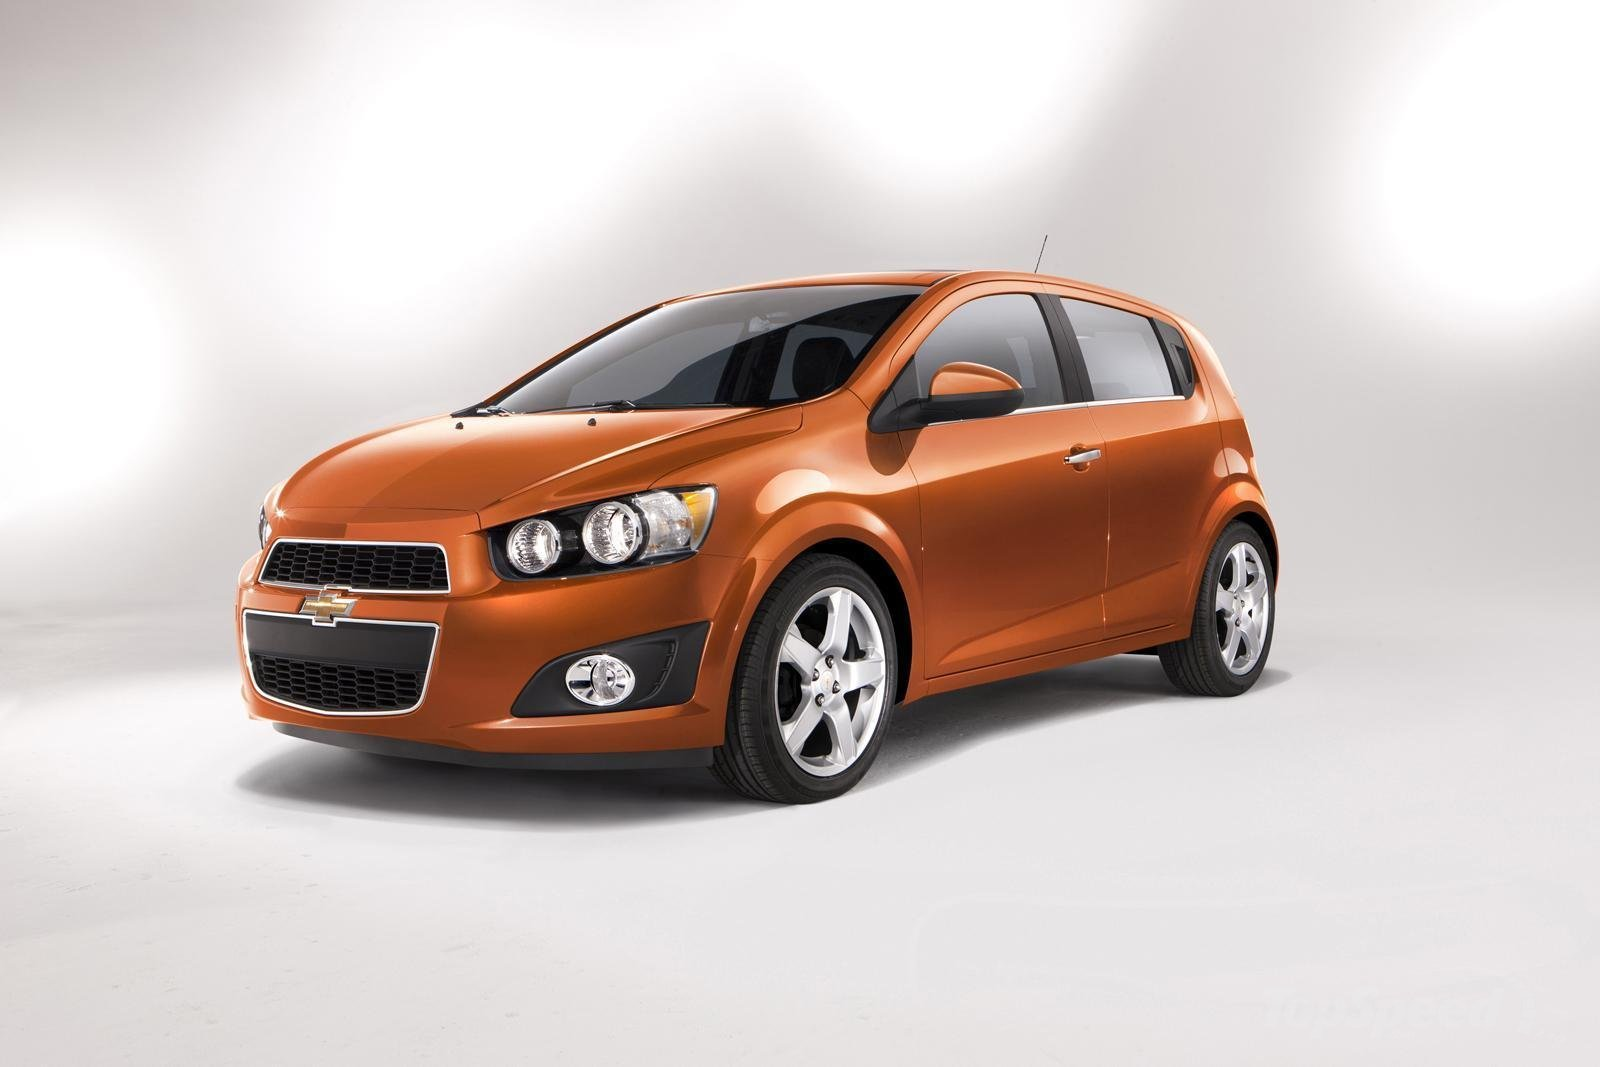 2012 Chevrolet Sonic Gm Announces Its New Six Speed Auto